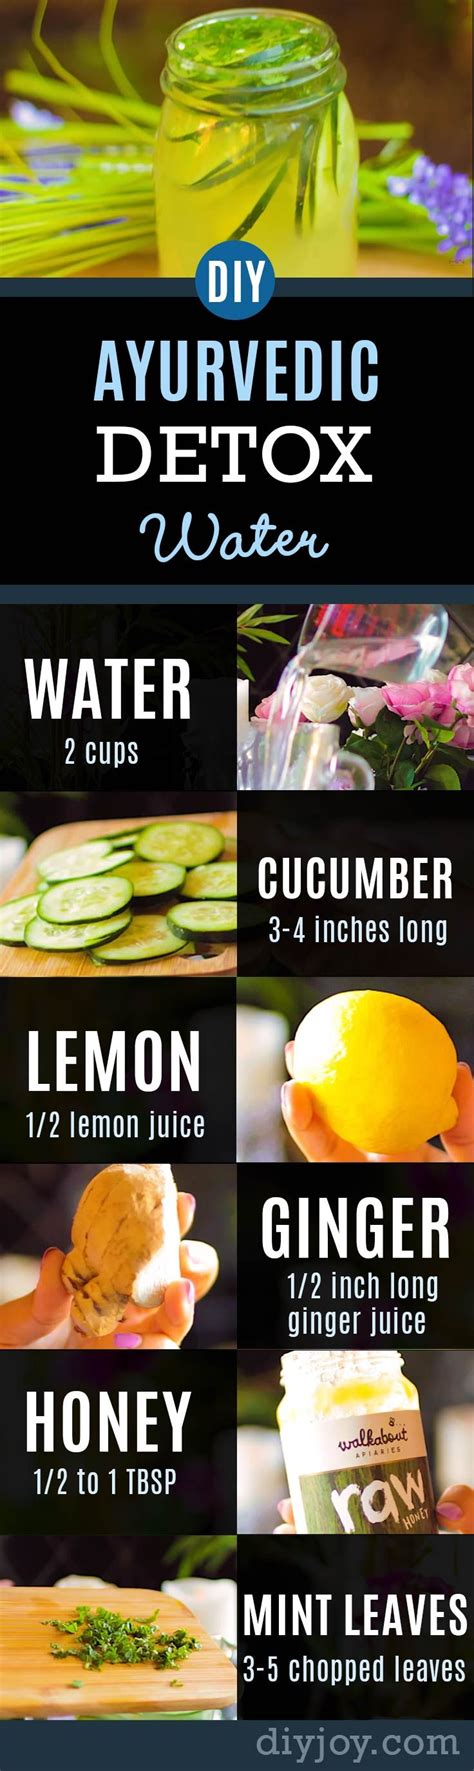 Clear Skin Detox Book by Ayurvedic Detox Water Recipe Promotes Healthy Clear